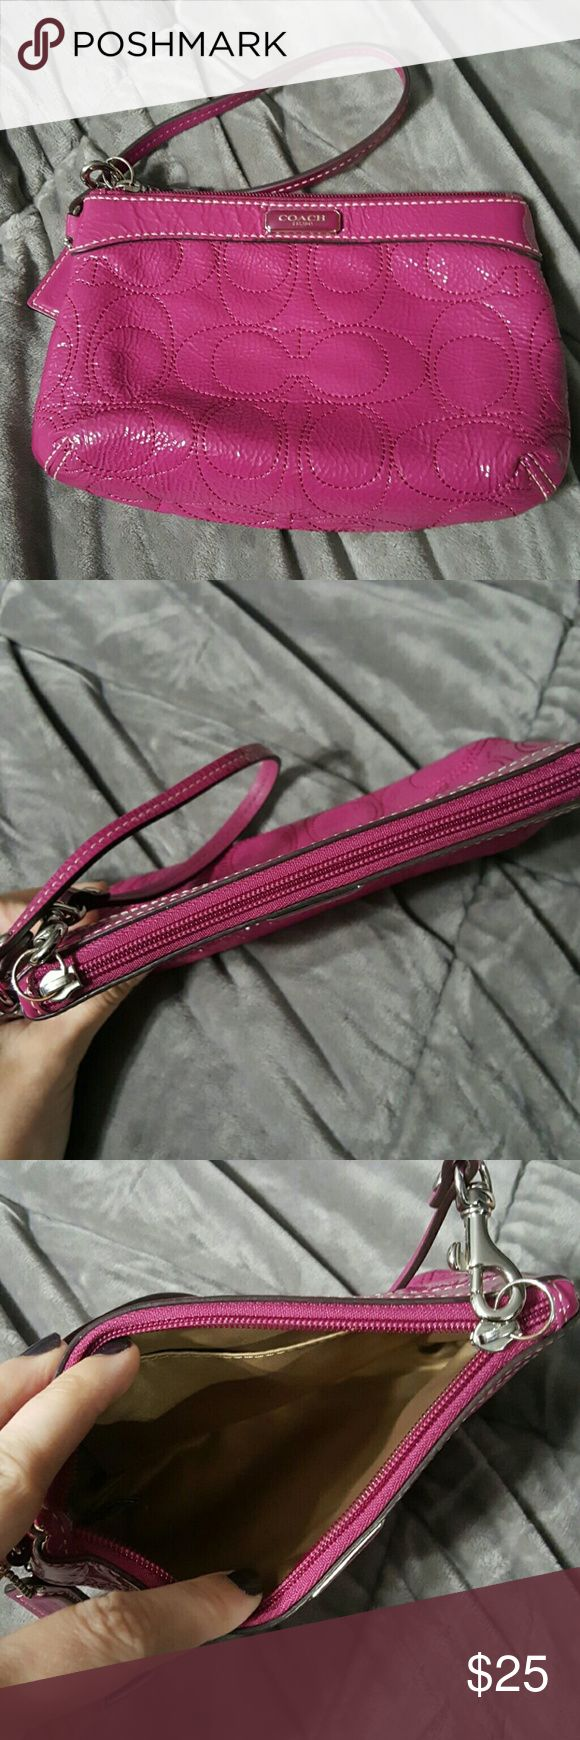 Coach wristlet Small magenta leather Coach wristlet. Design has signature C but all leather.  Never used,  Zips closed Coach Bags Clutches & Wristlets